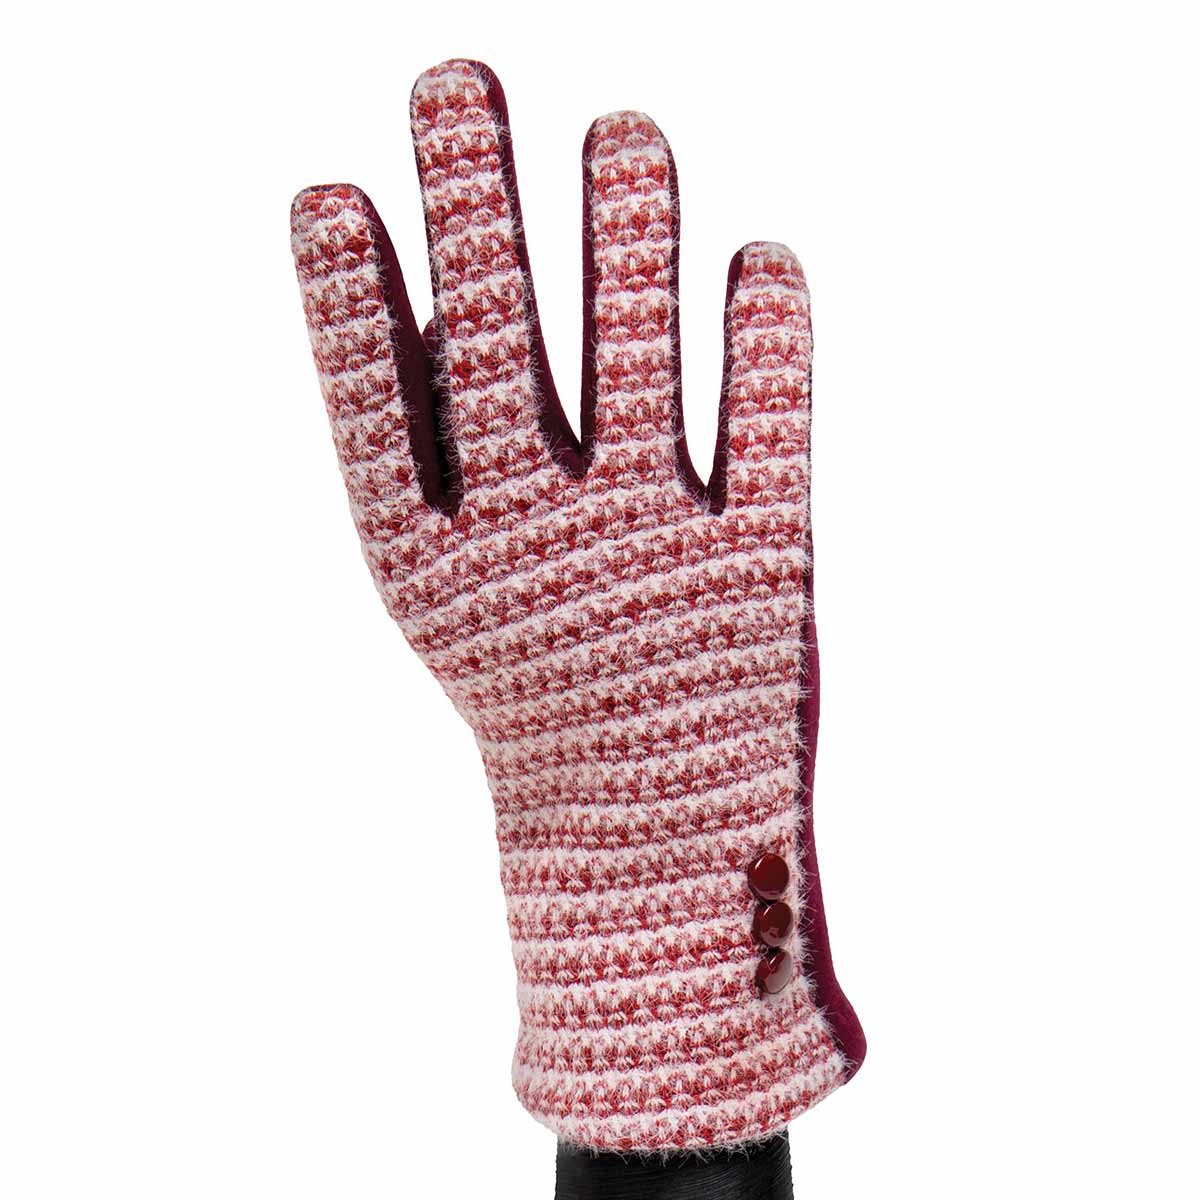 Burgundy Knit Gloves with Buttons